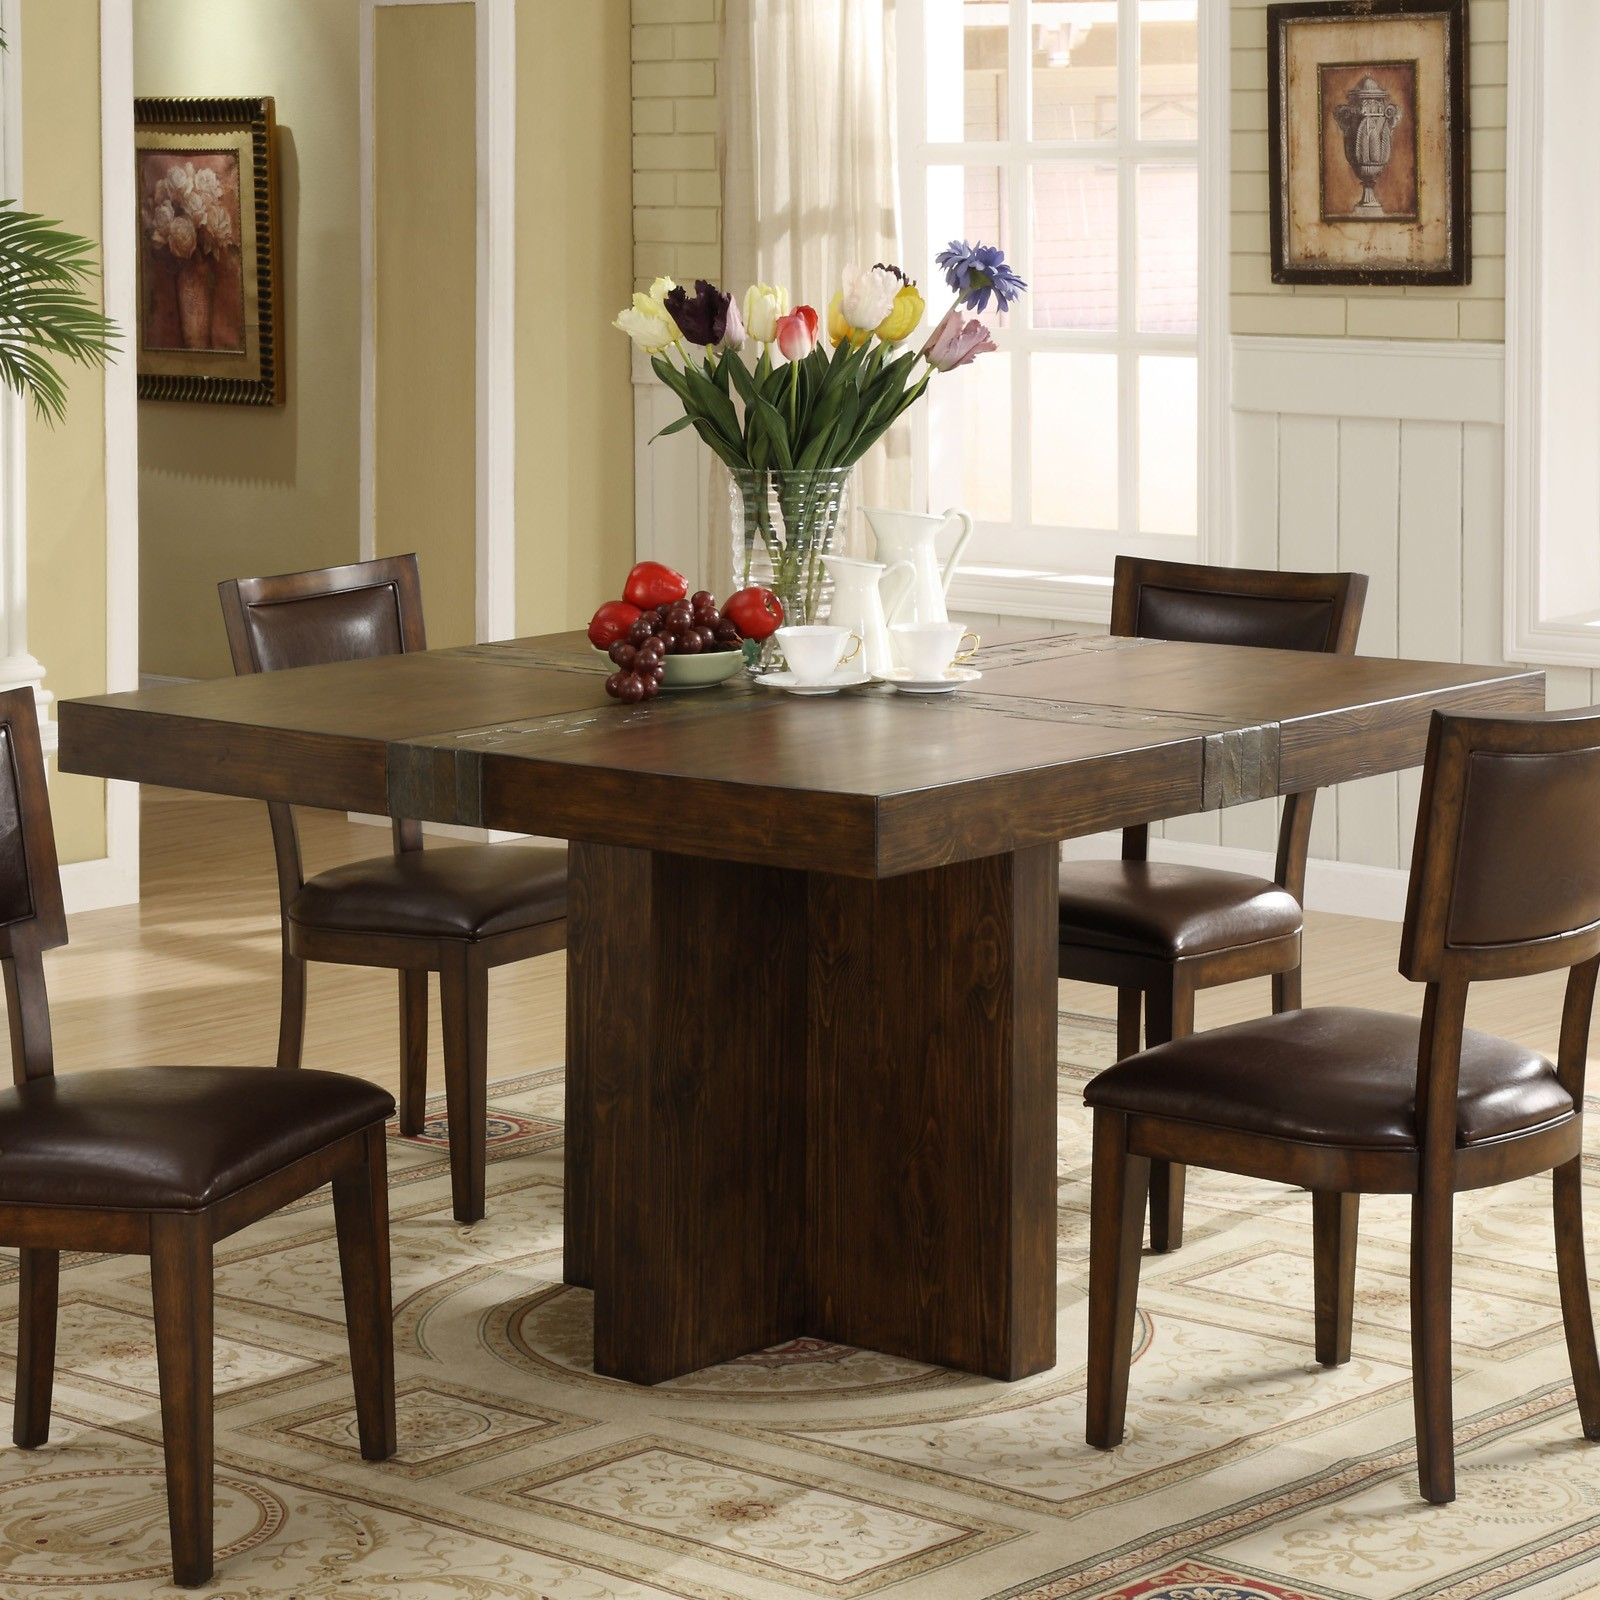 Square Dining Room Table Seats 8 2